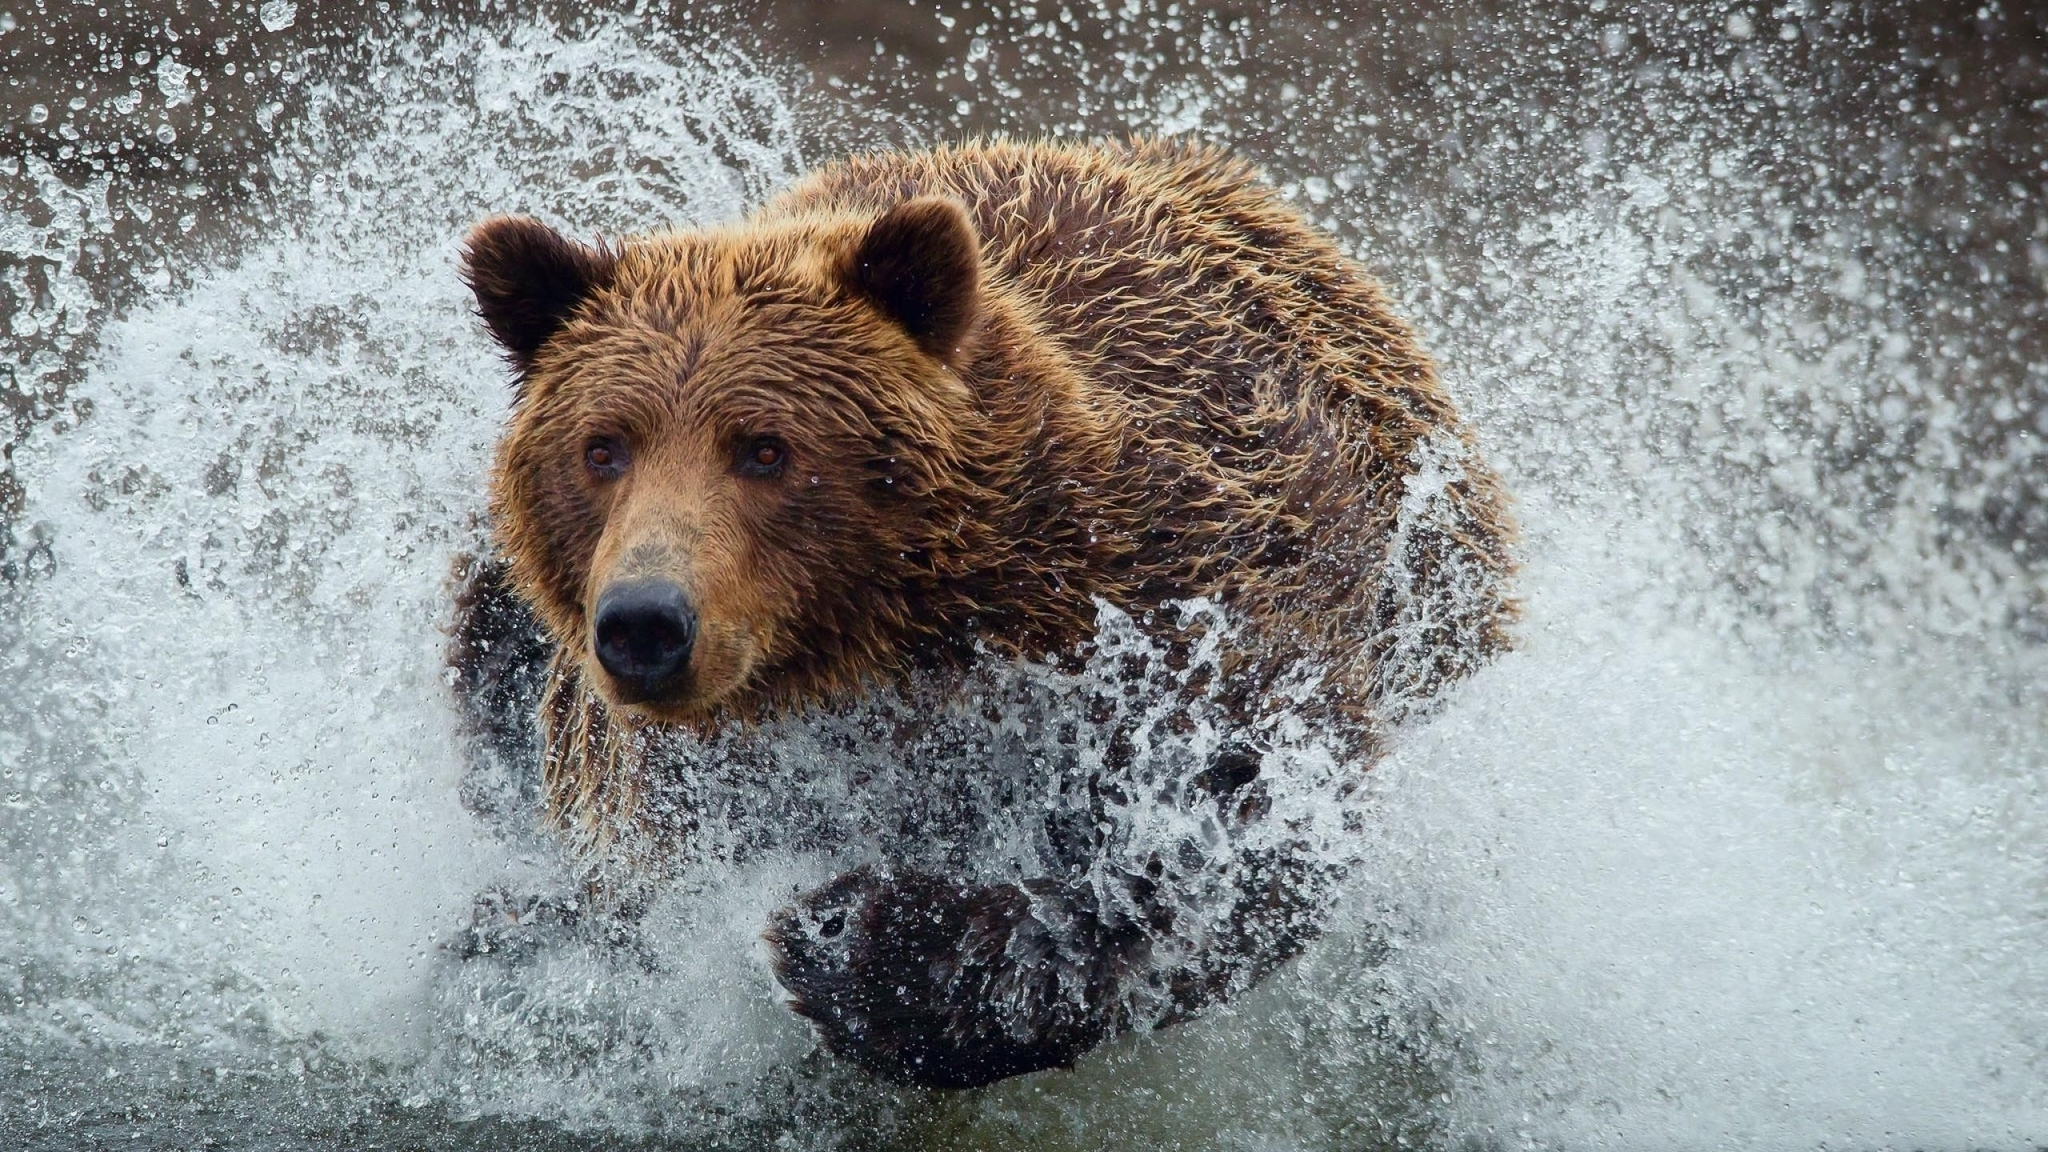 Water animals wet grizzly bears running bears wild animals (2048x1152)